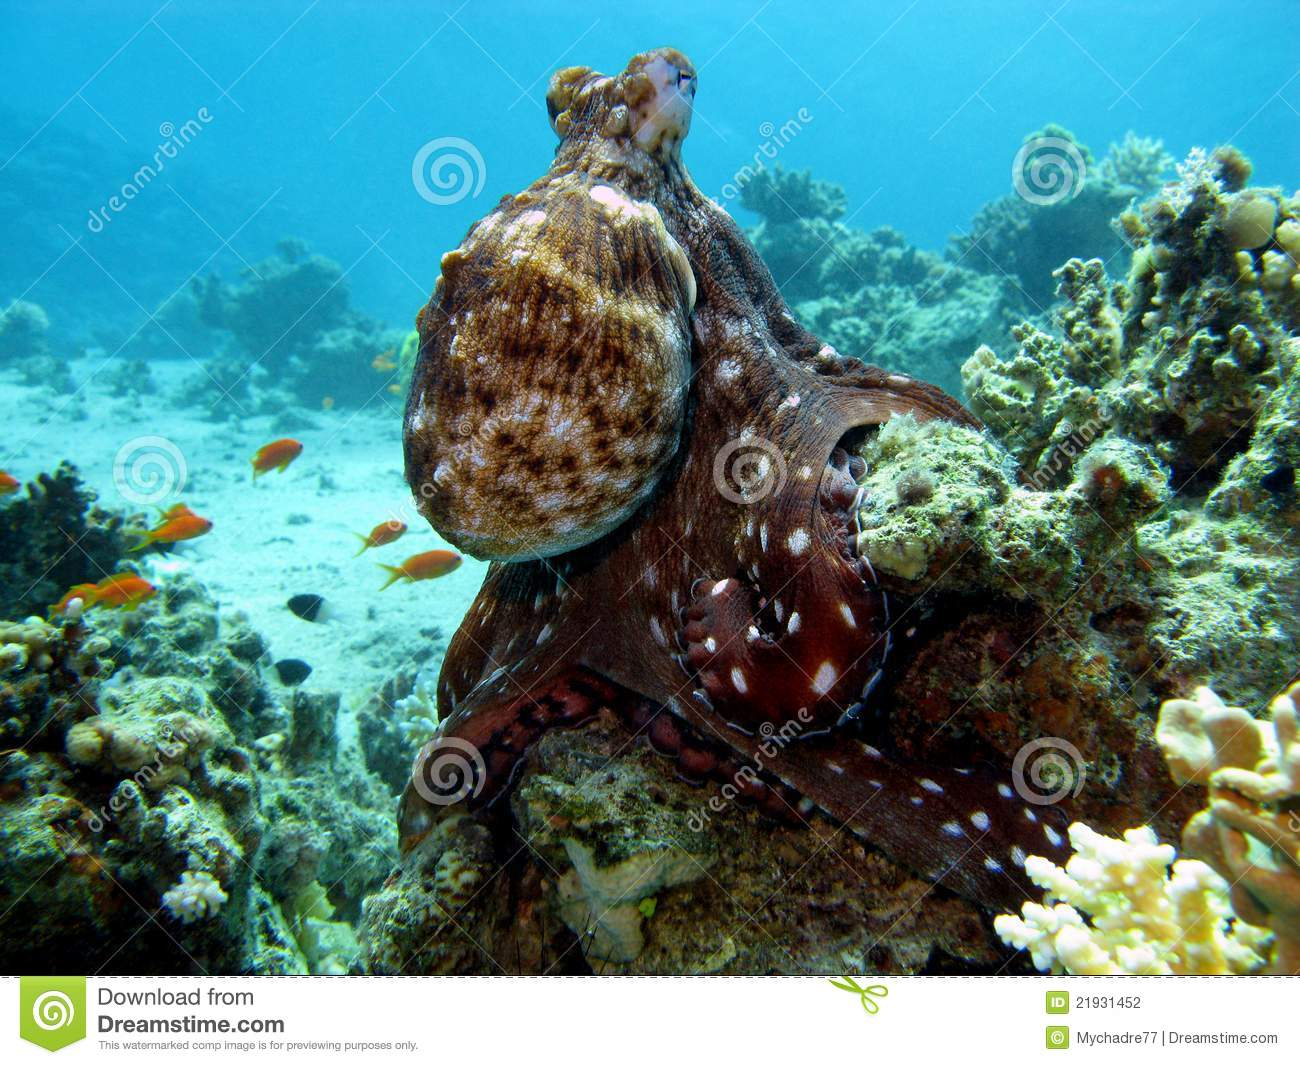 Coral Reef With Octopus Stock Photography - Image: 21931452